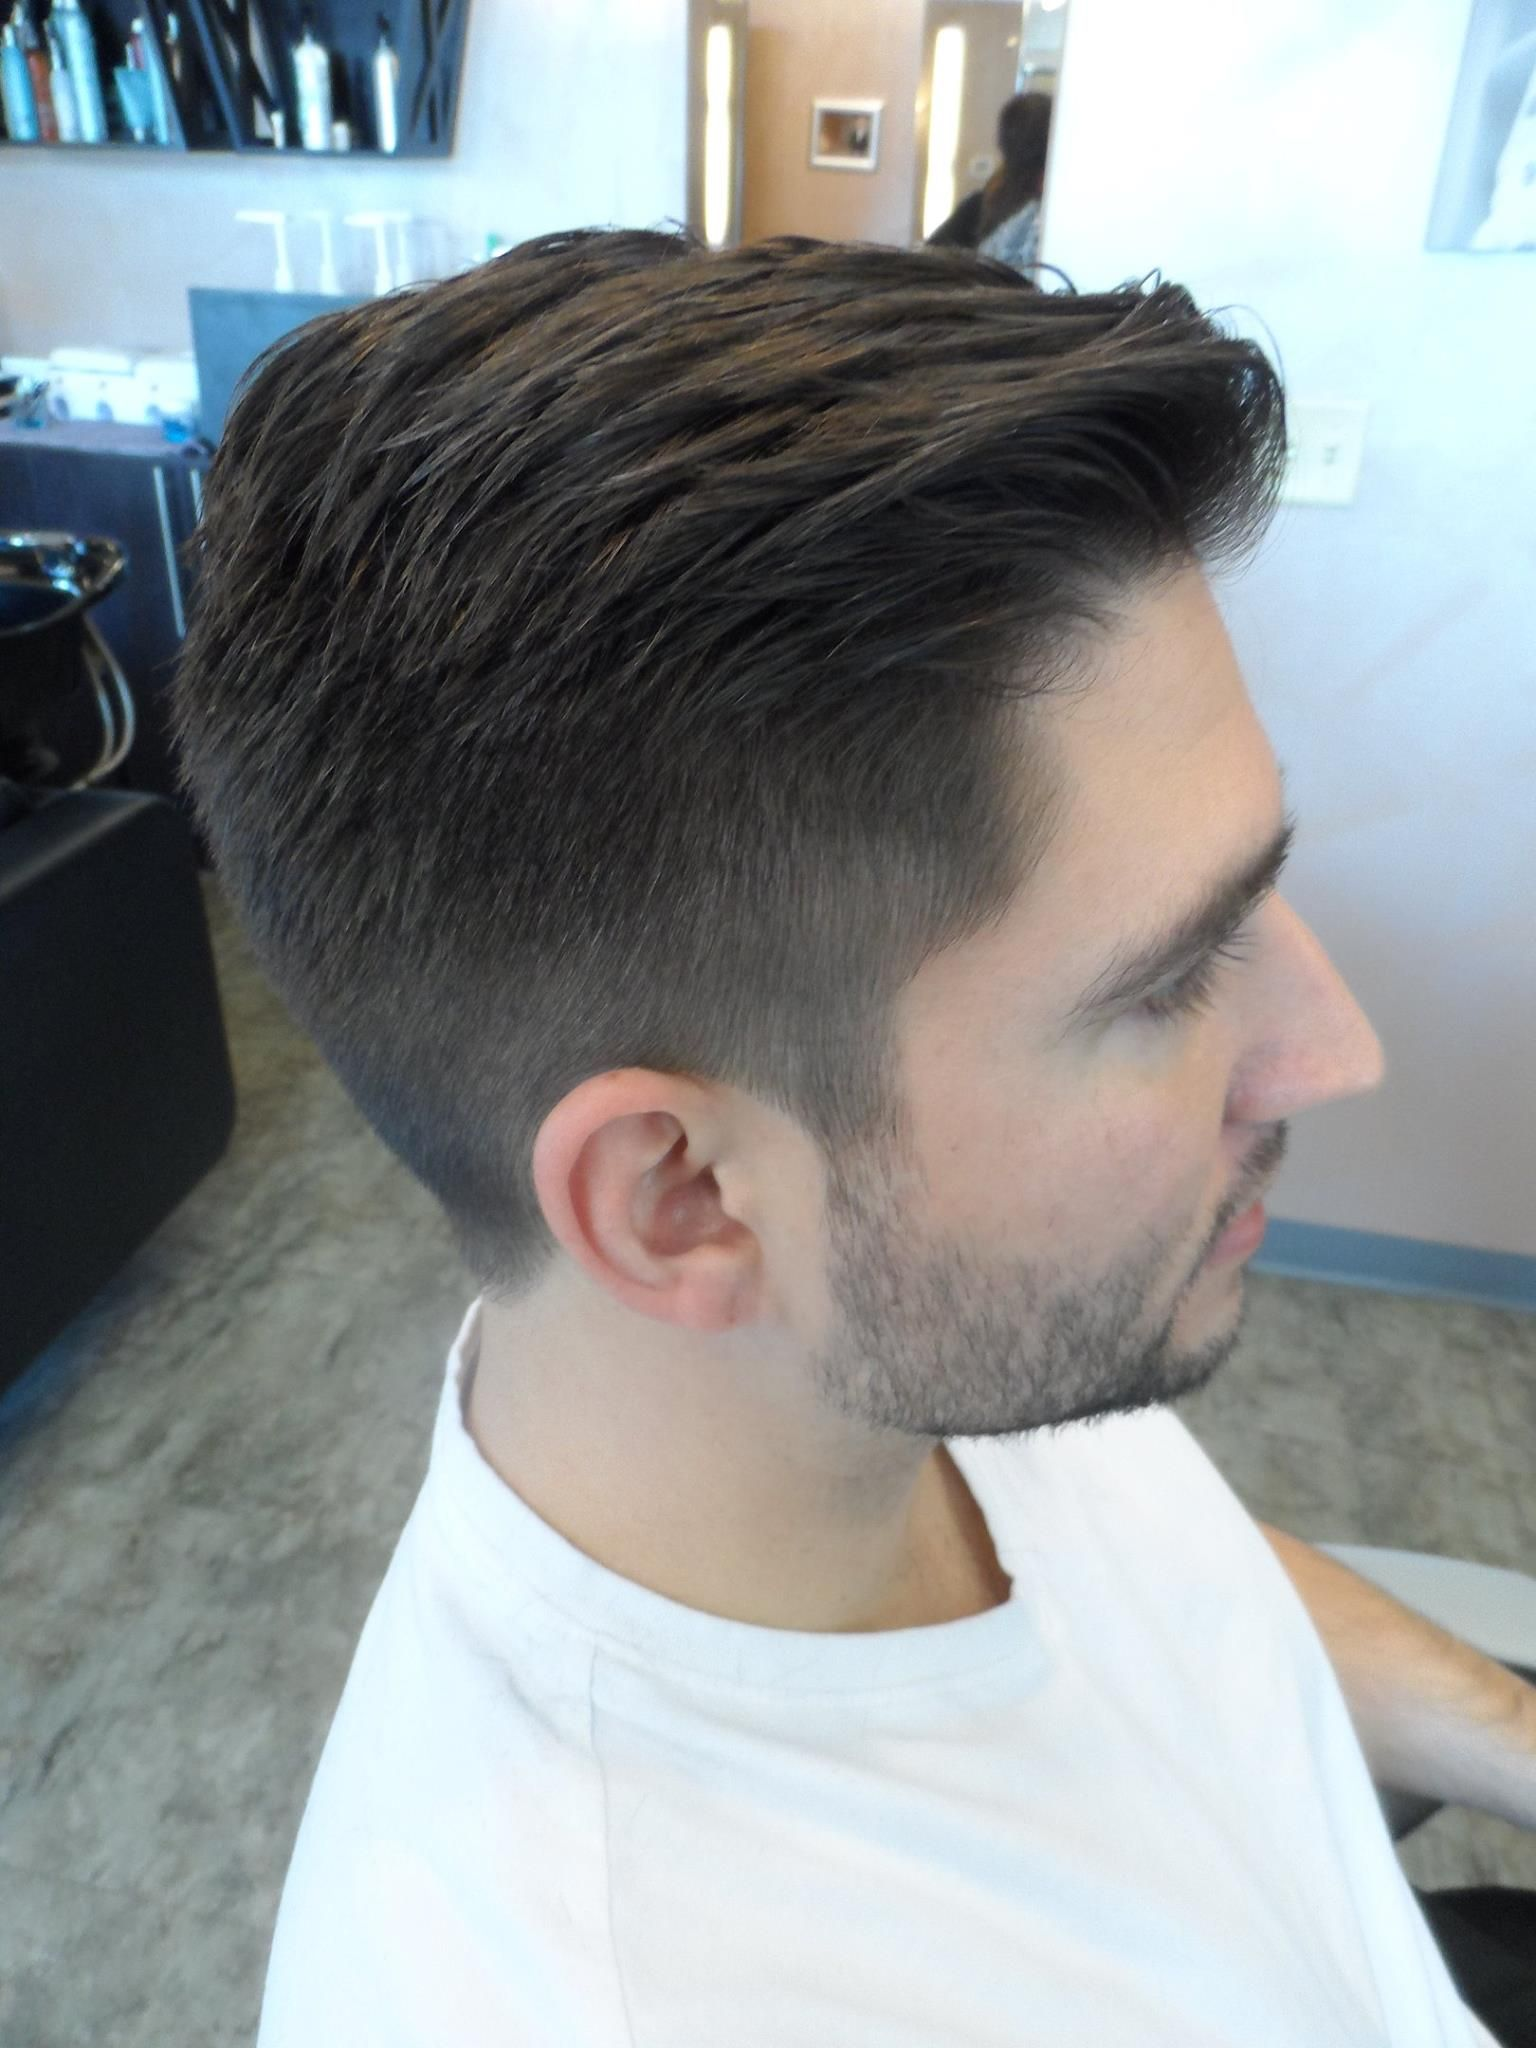 Soft fade mens haircut with low rise pompadour by Erin Conn